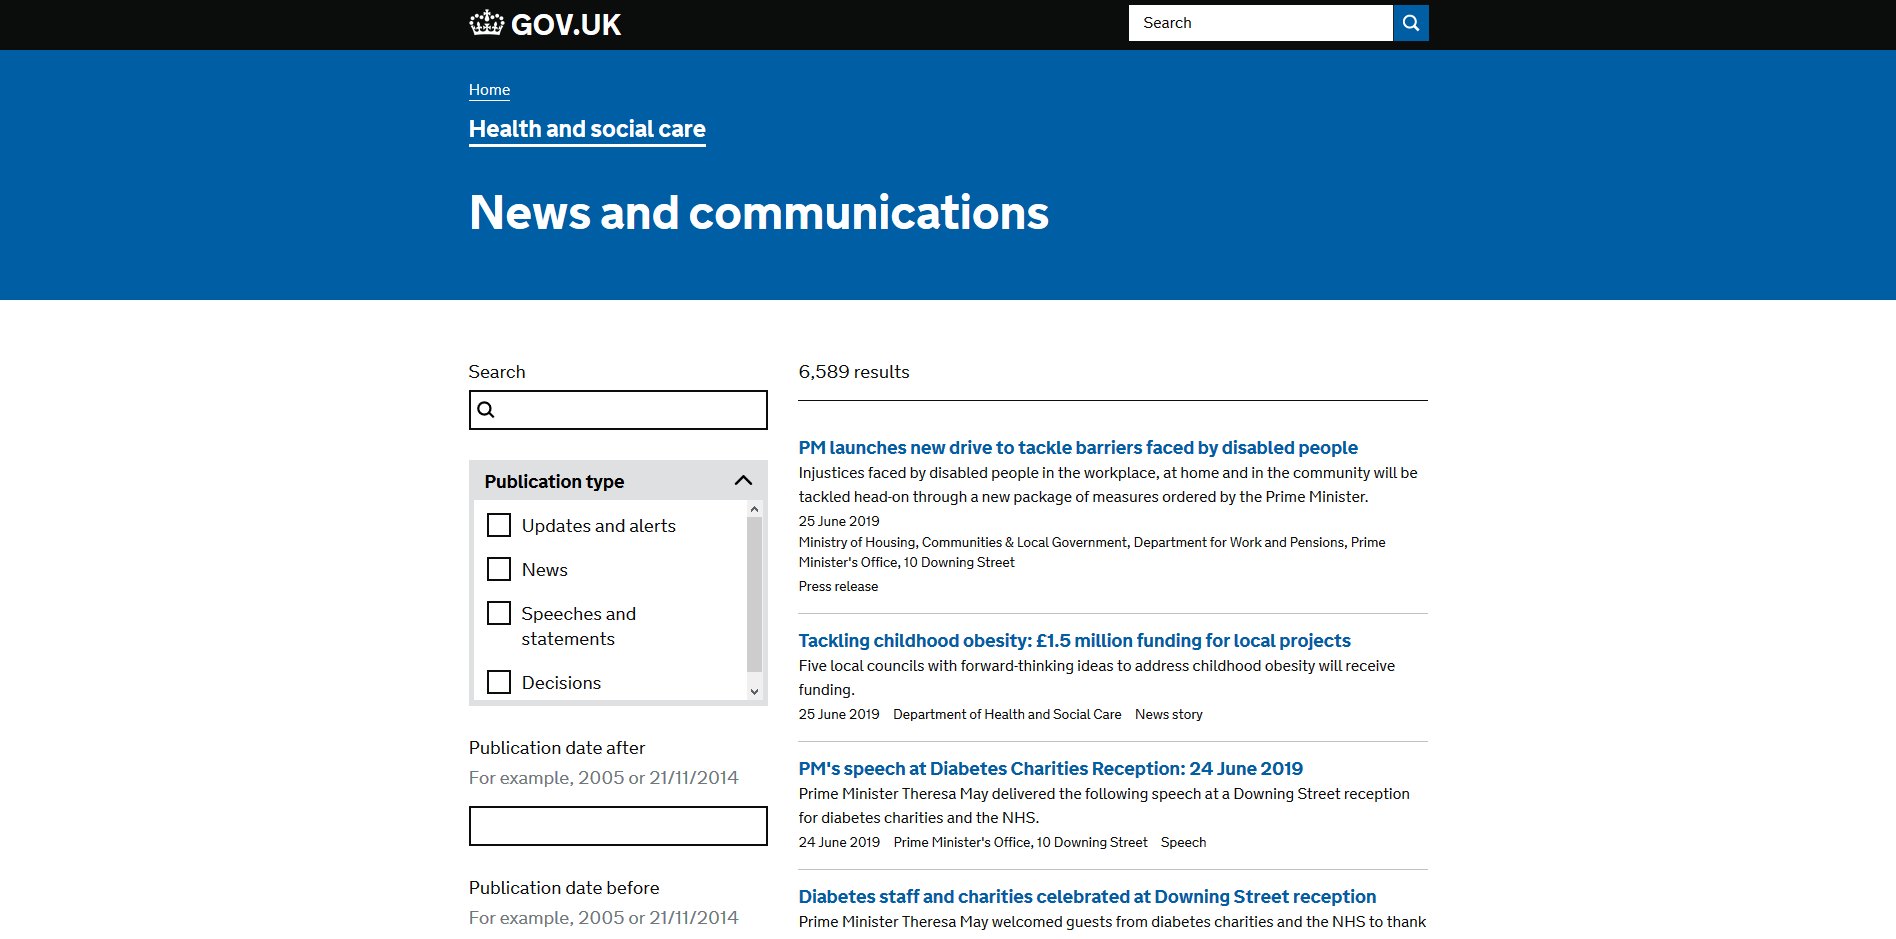 Department of Health and Social Care News and communications